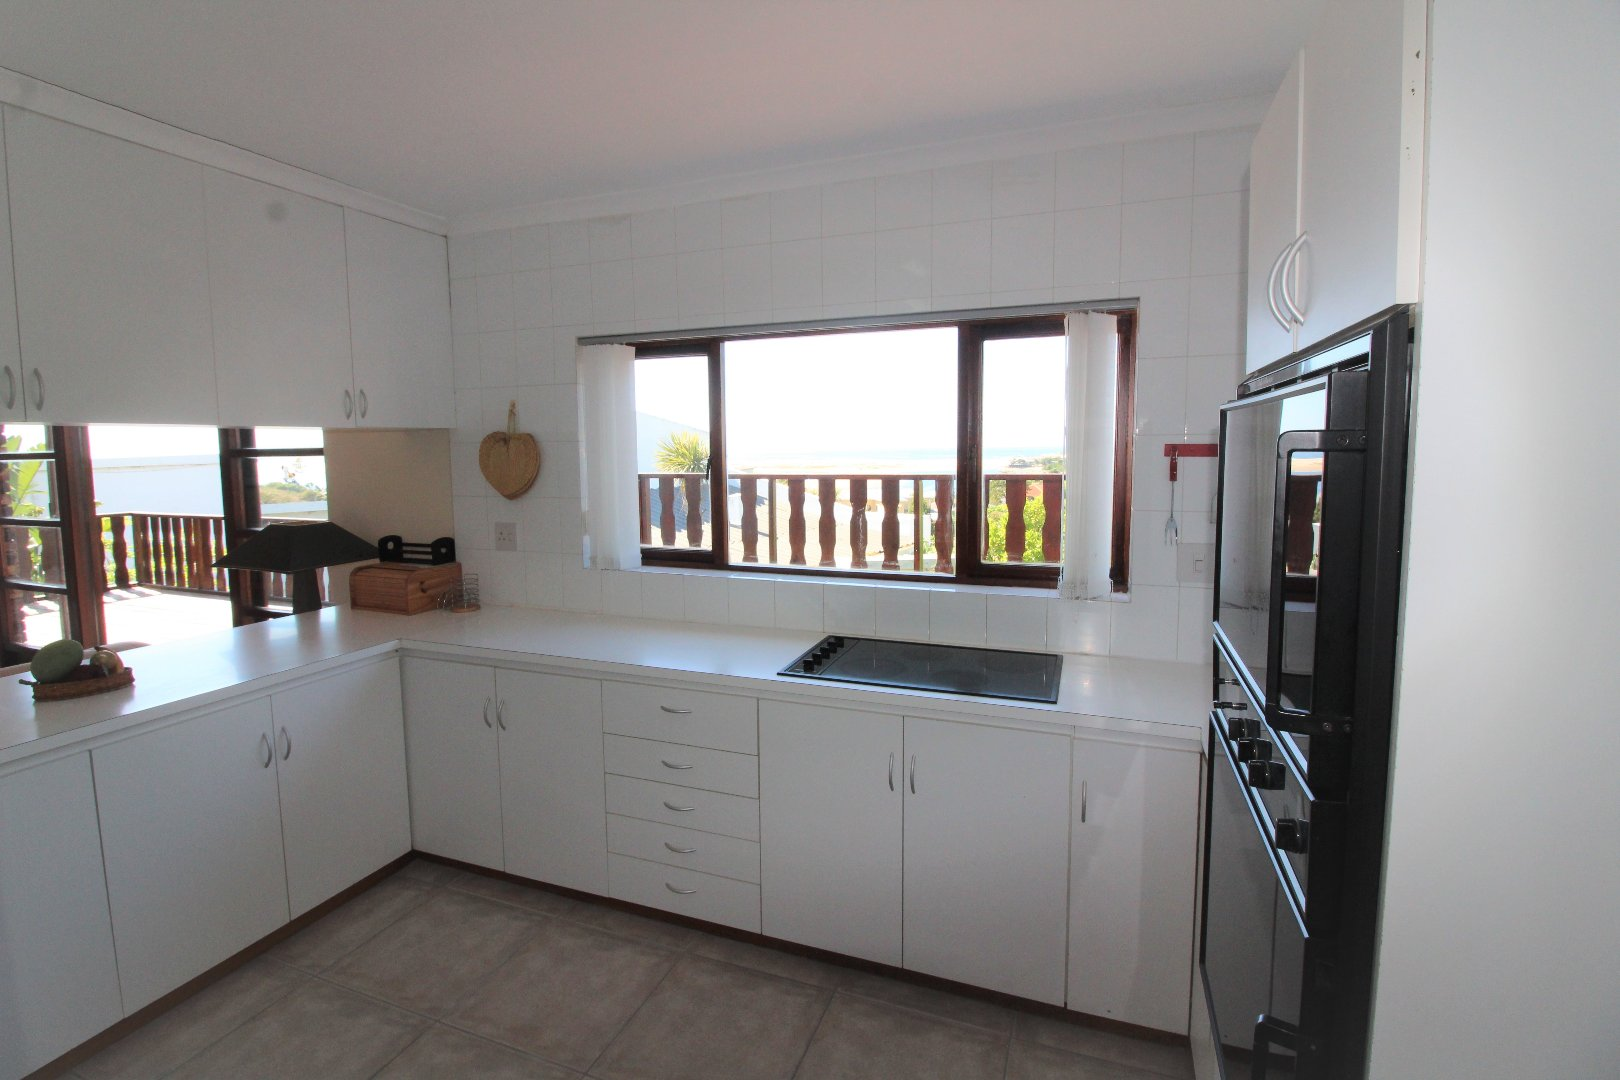 House for sale in poortjies 8 bedroom 13540824 2 15 for Kitchen design 47905